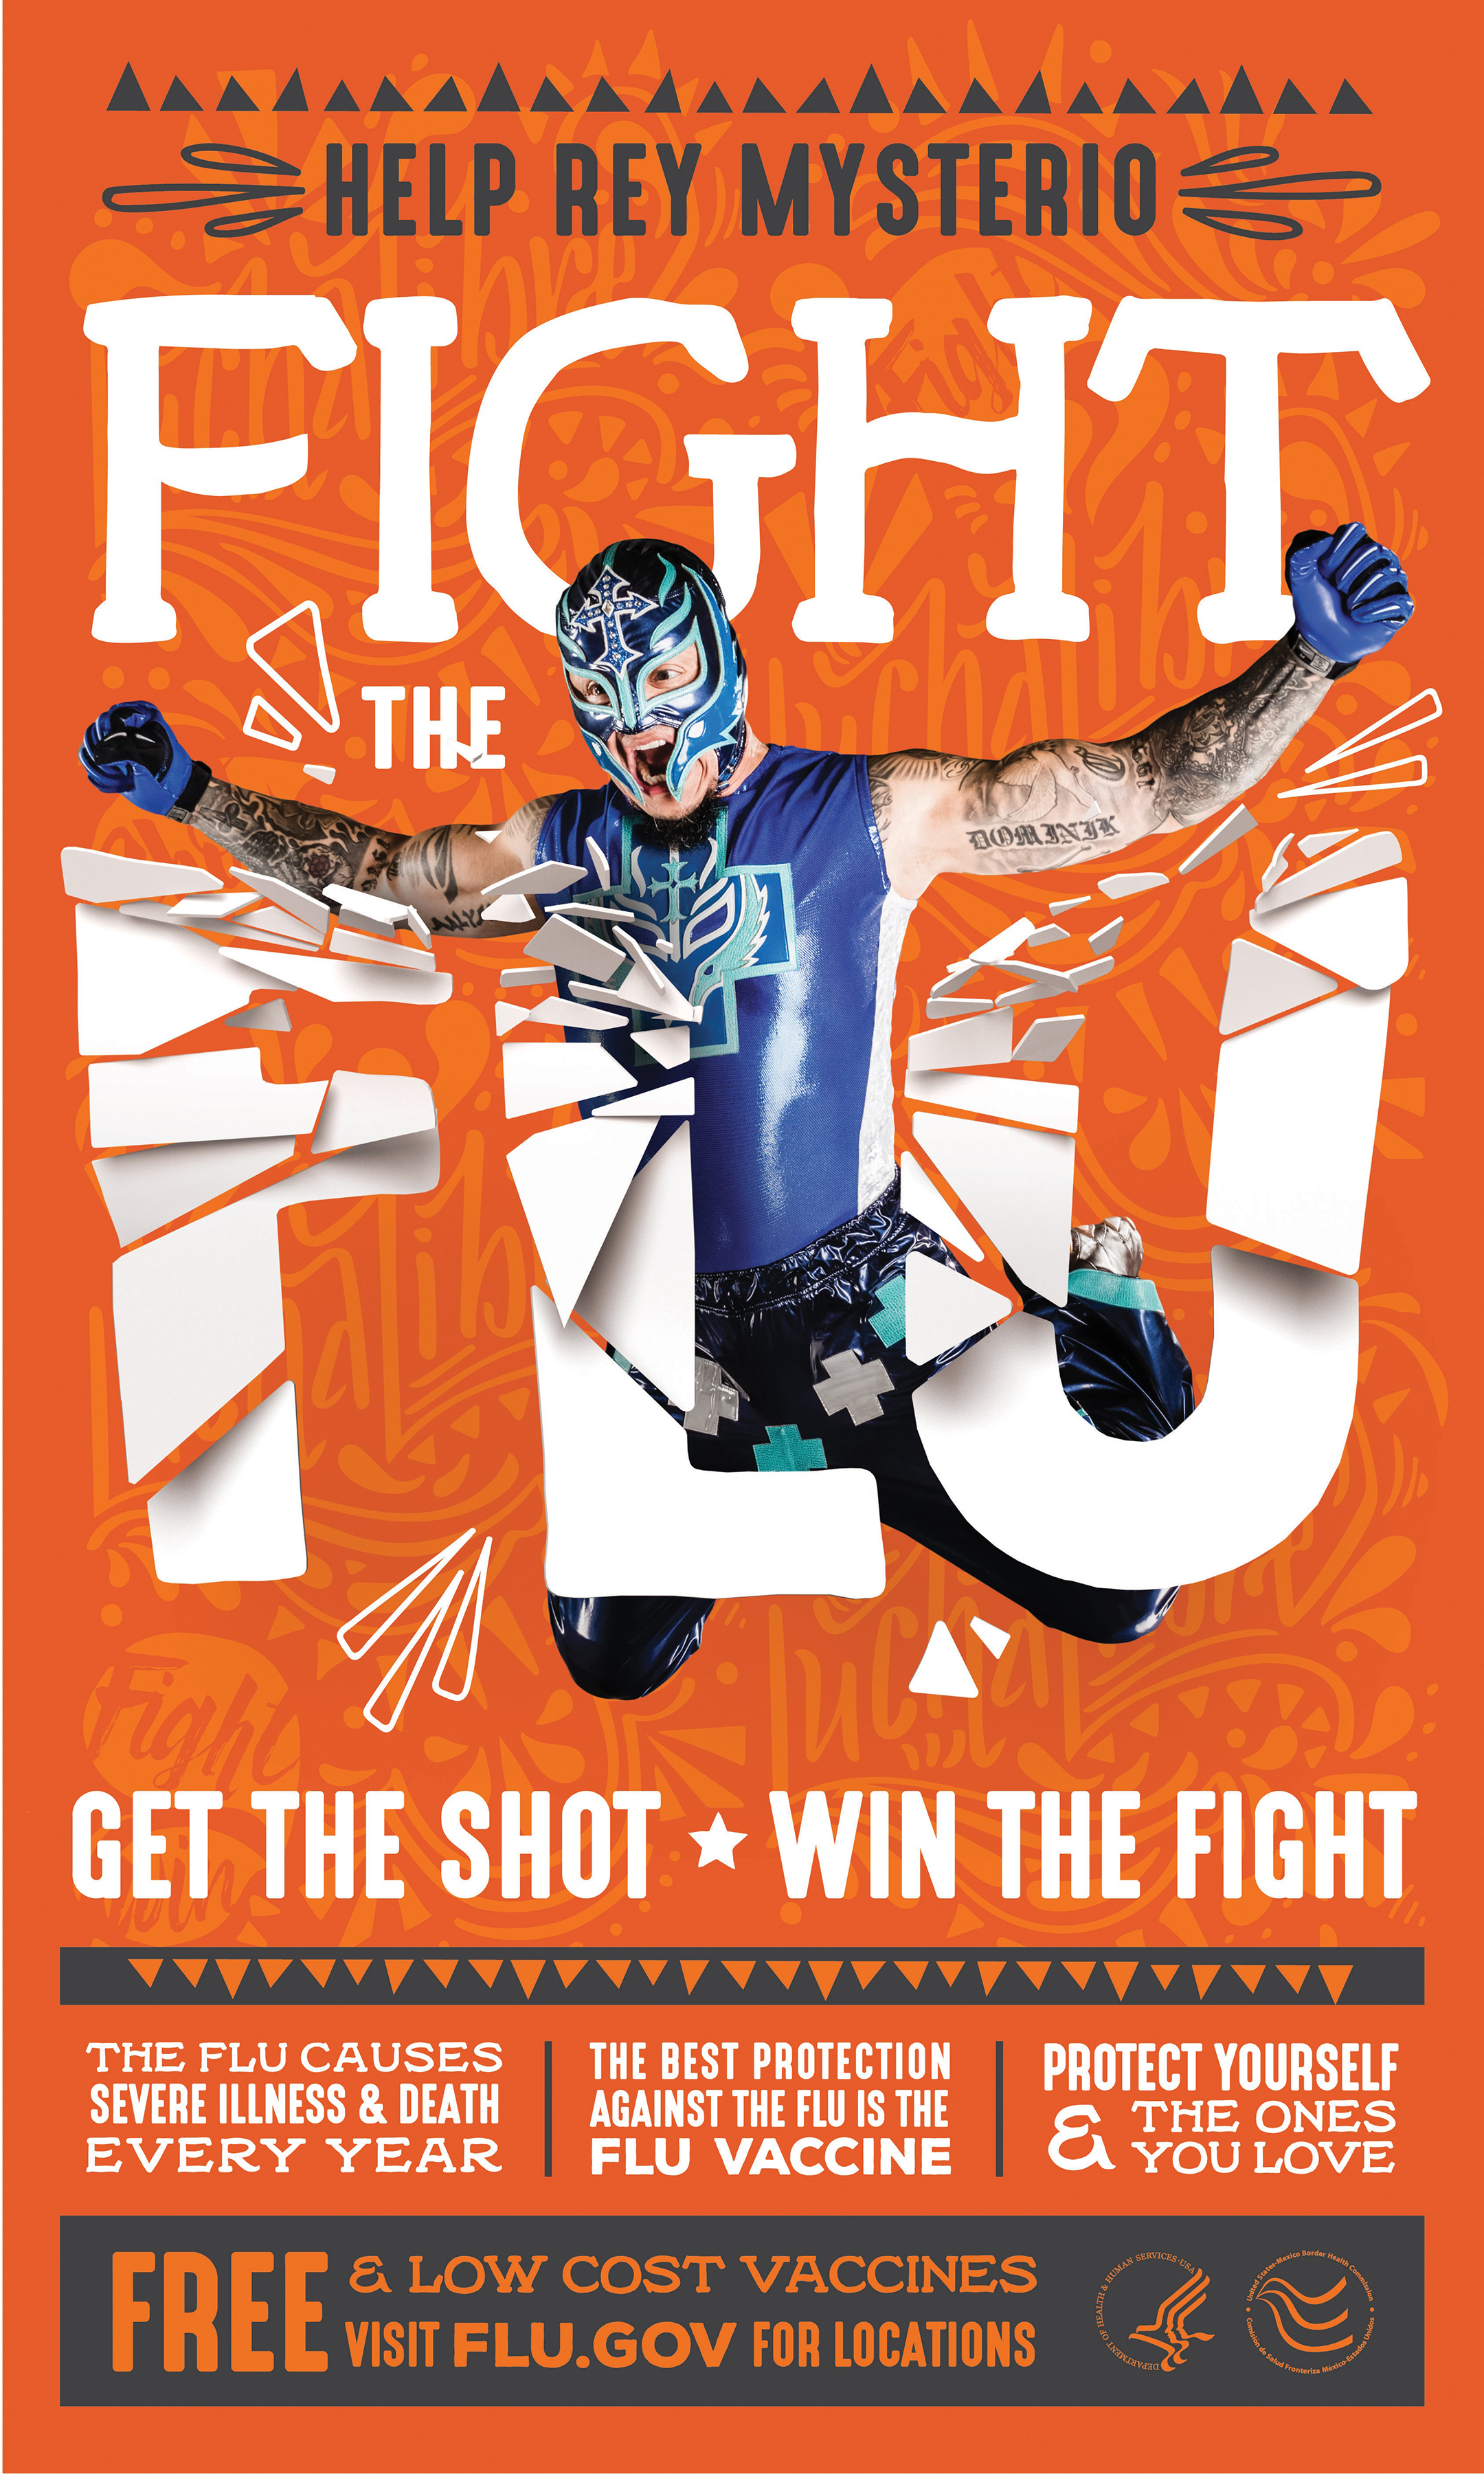 "Rey Mysterio breaks through the headline ""Flight the Flu."""